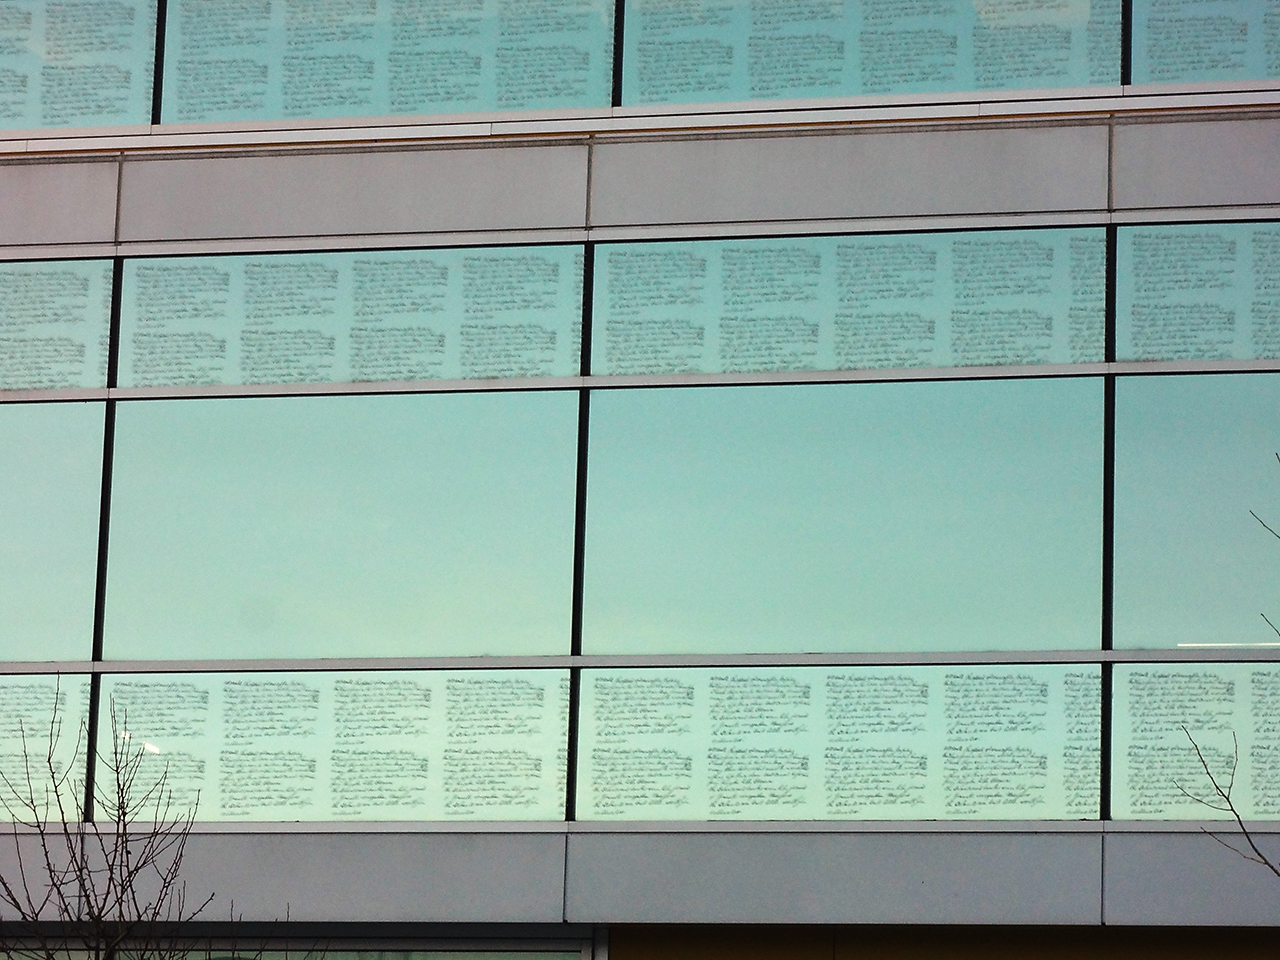 windows with etched handwriting on them